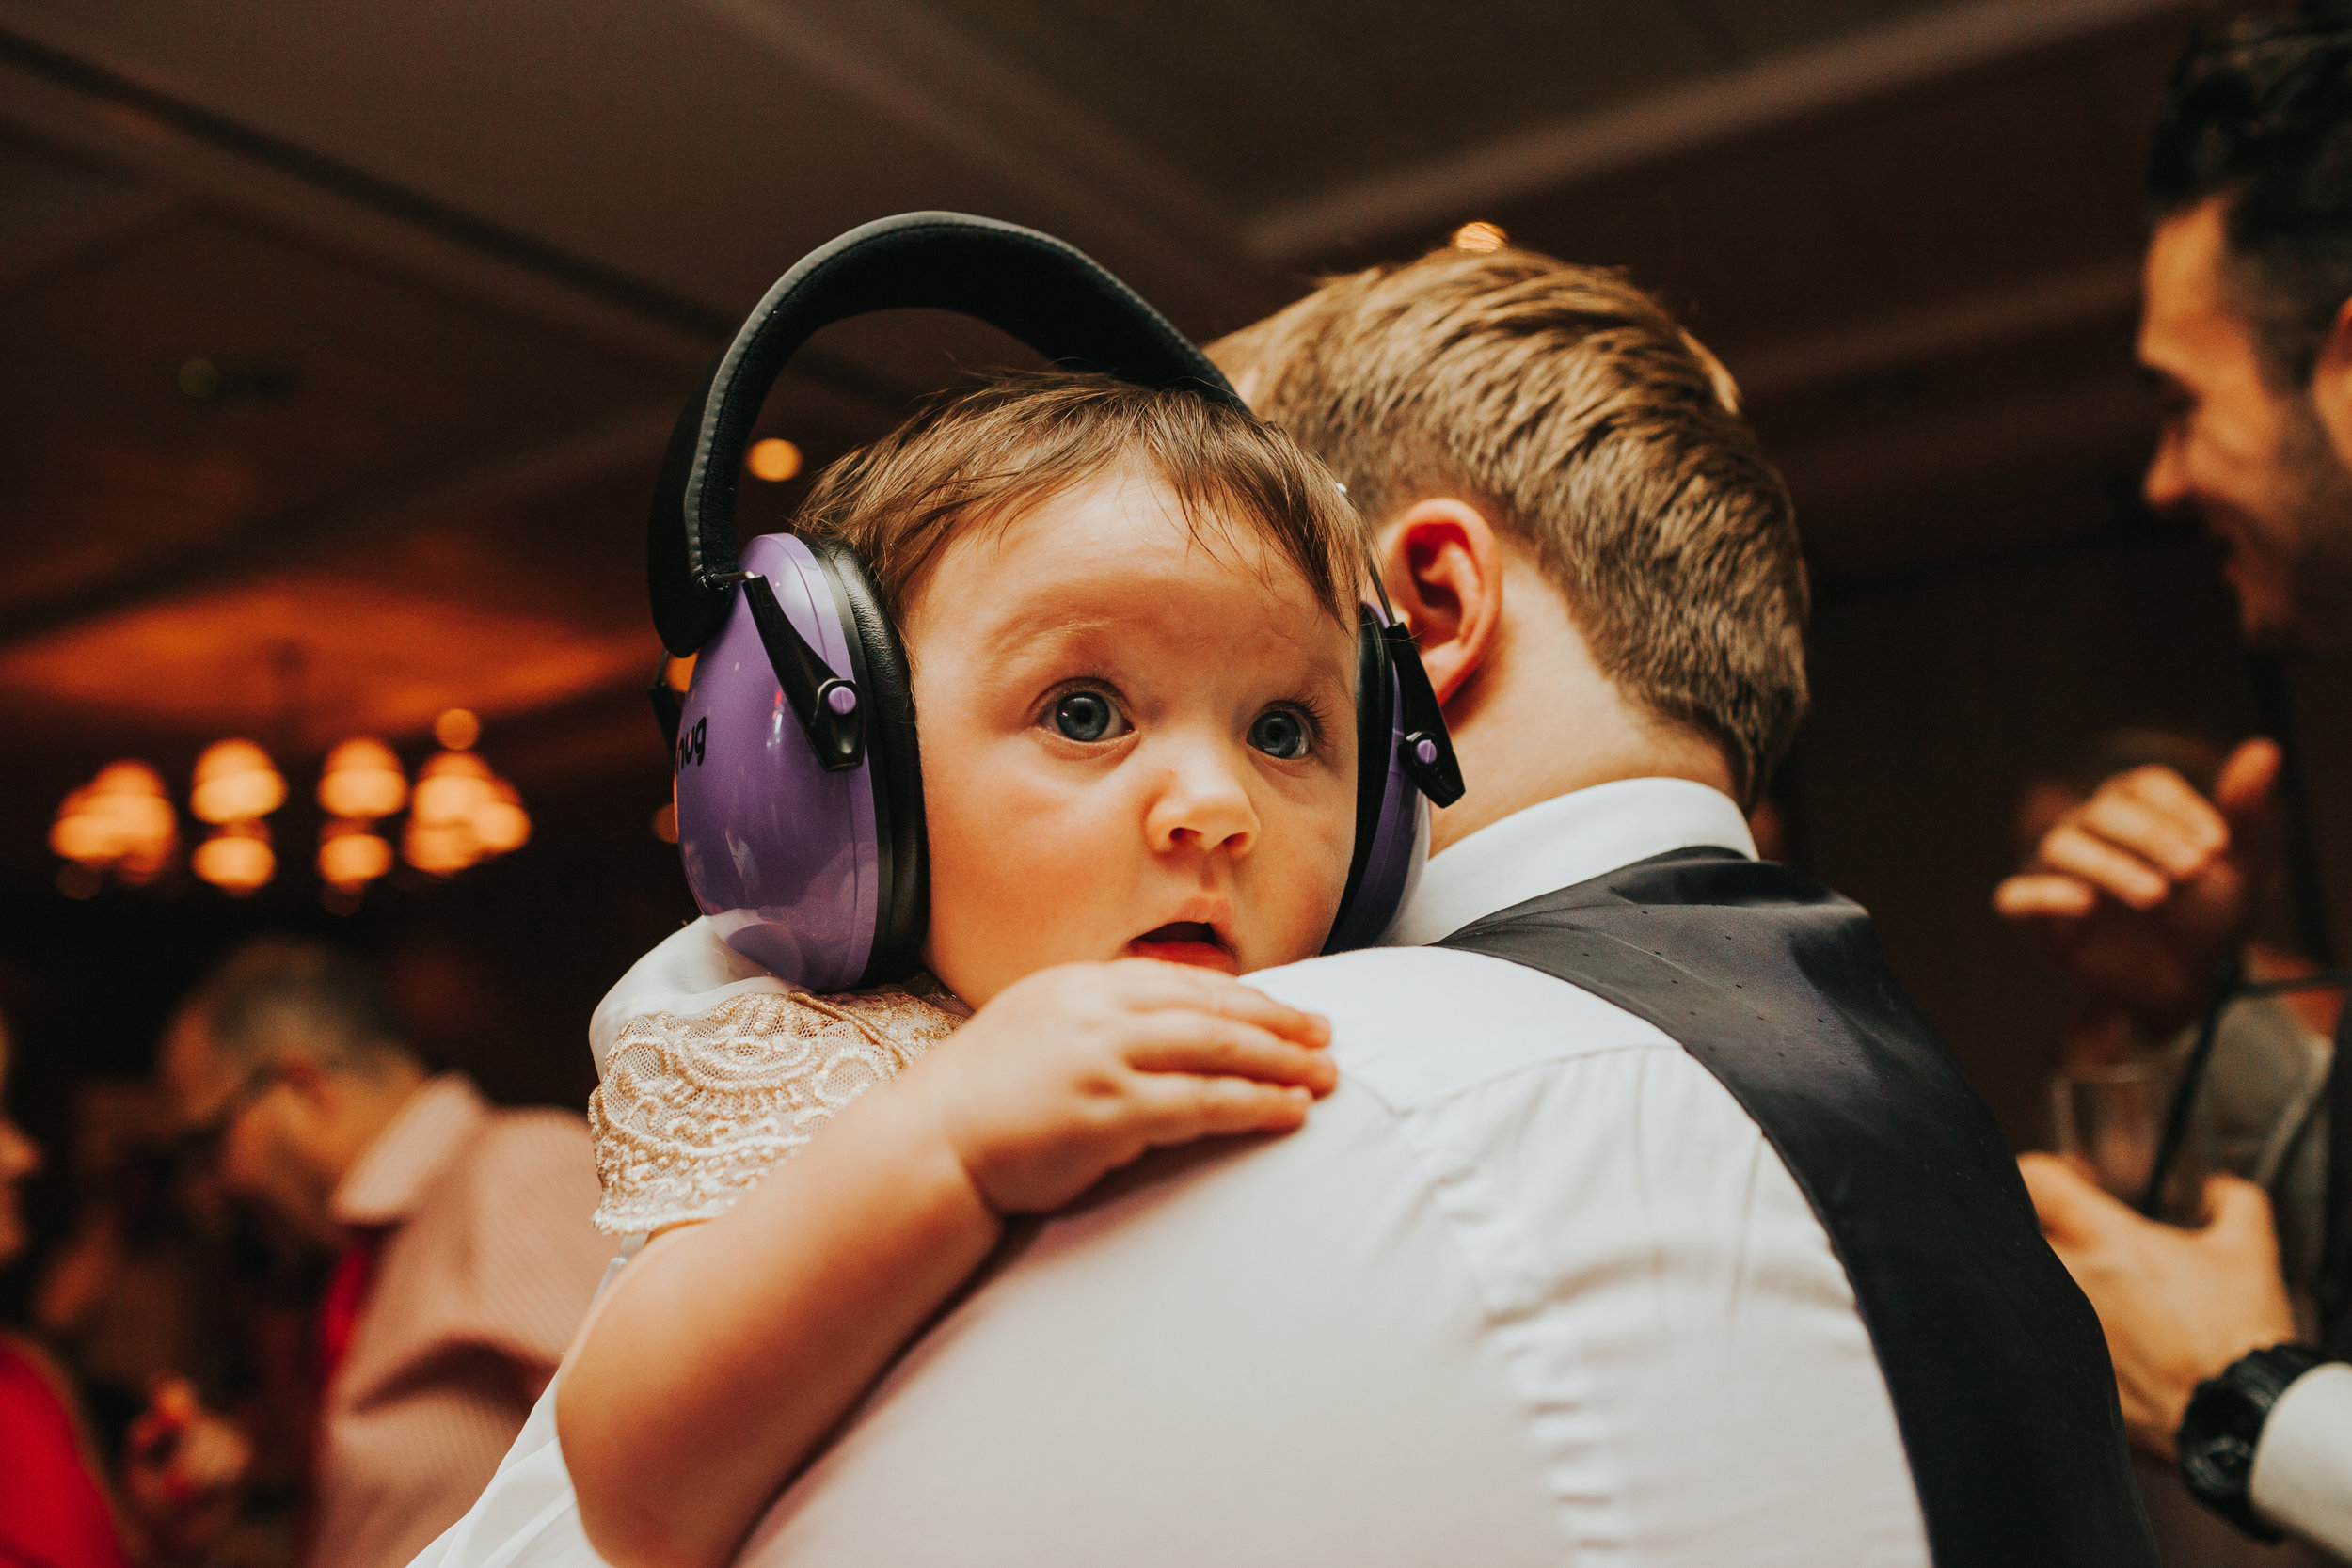 Cute baby with noise cancelling headphones on looking tired.